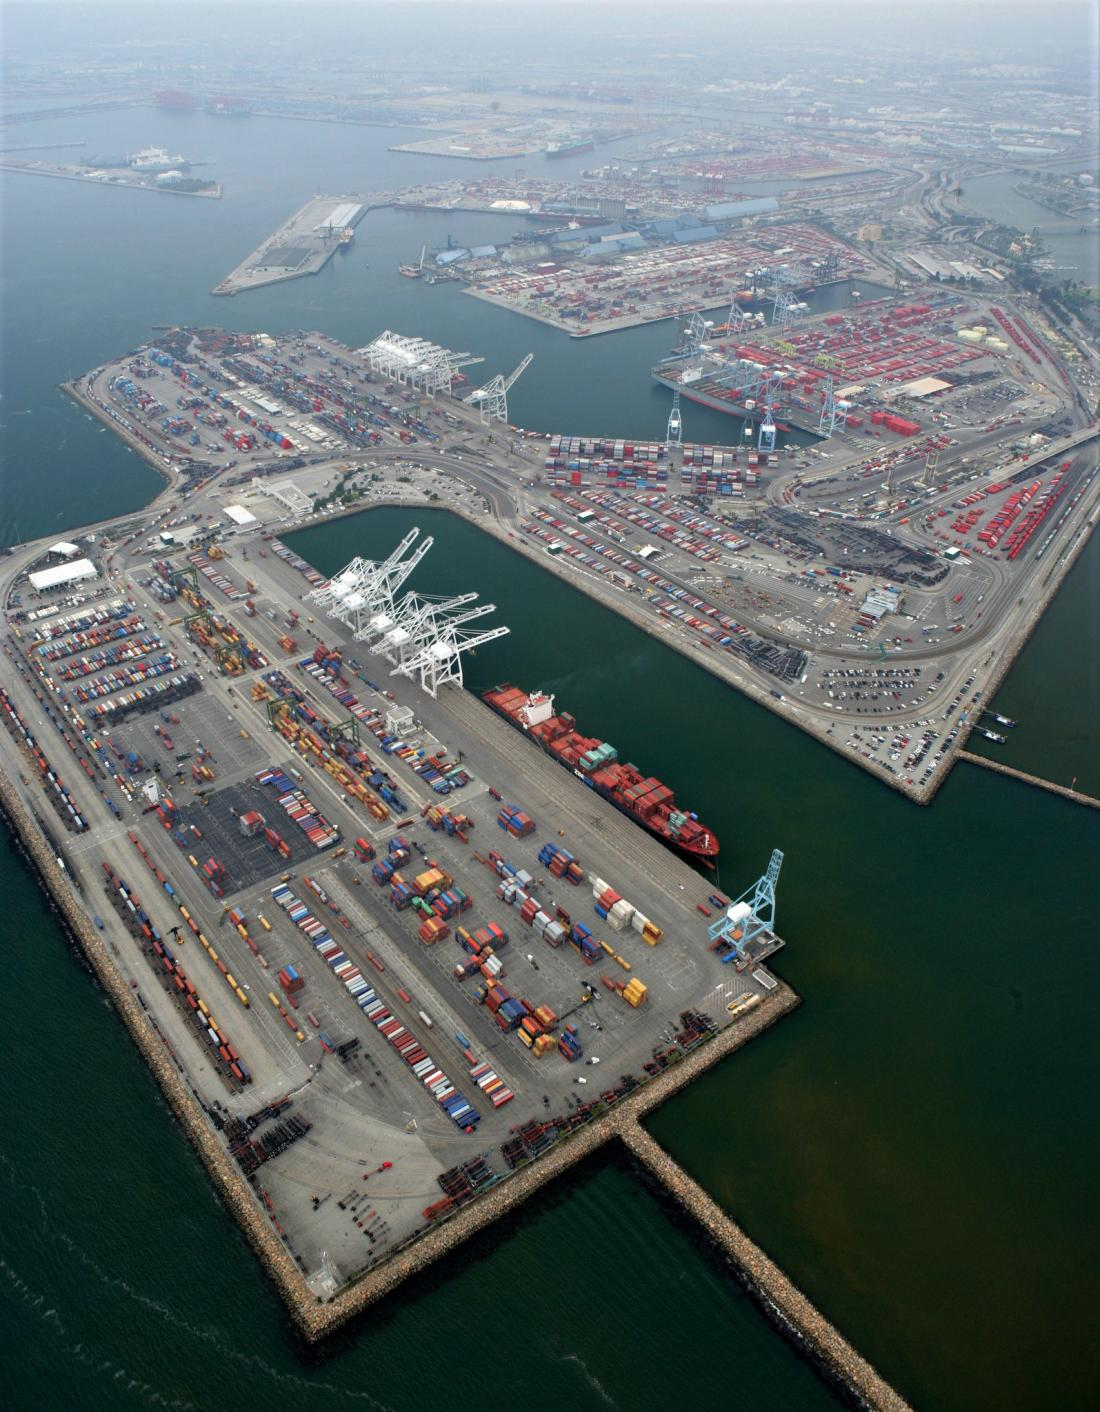 Aerial view of the Port of Long Beach, California, container port